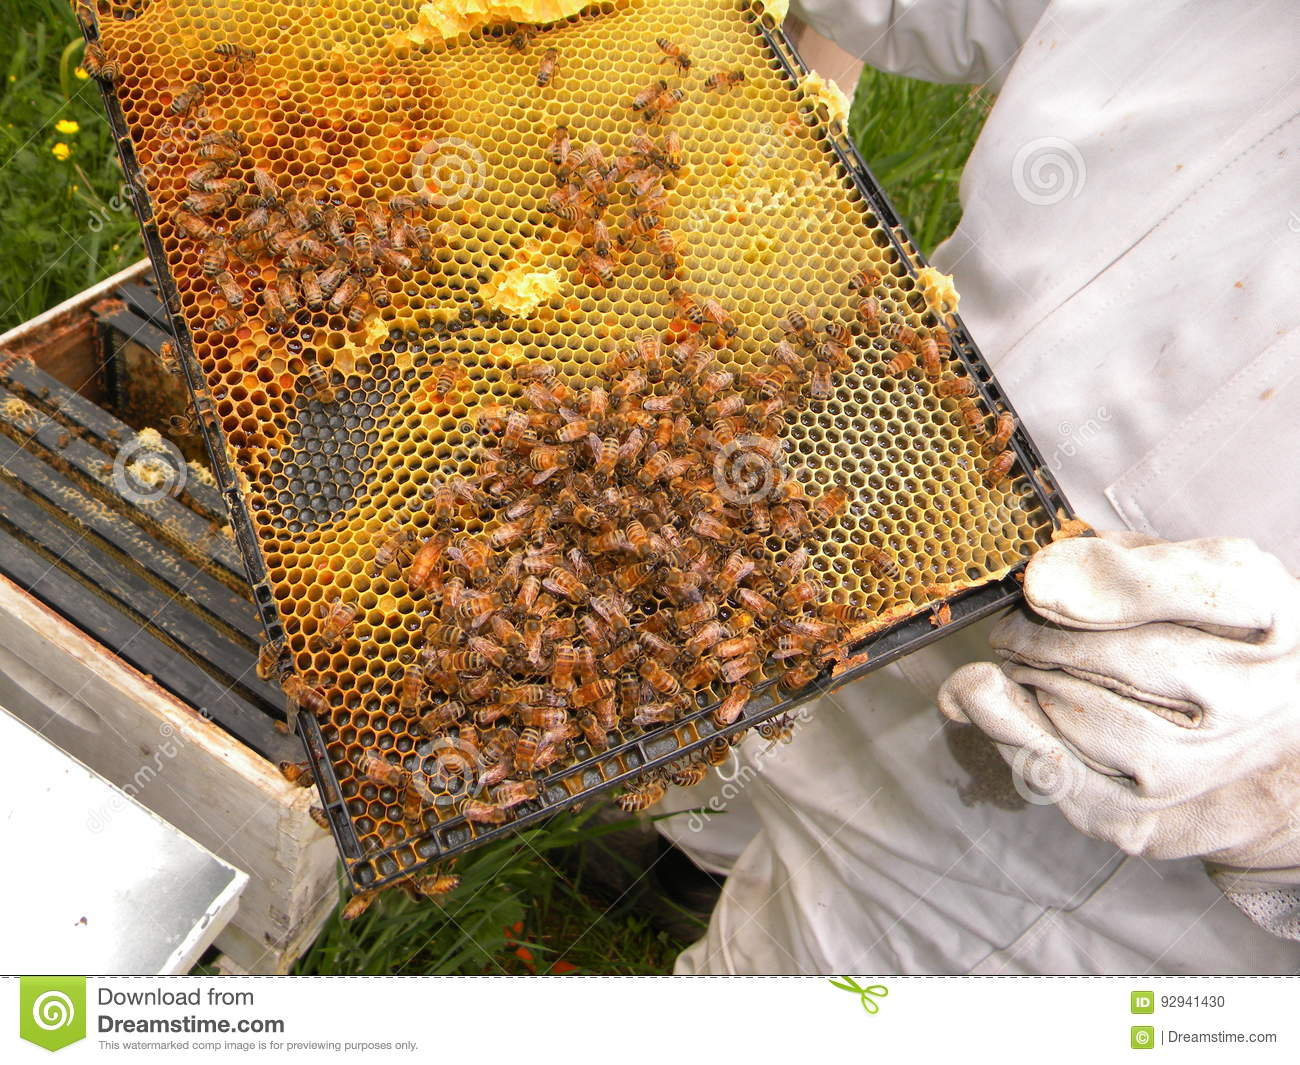 Honey Bees en Koningin